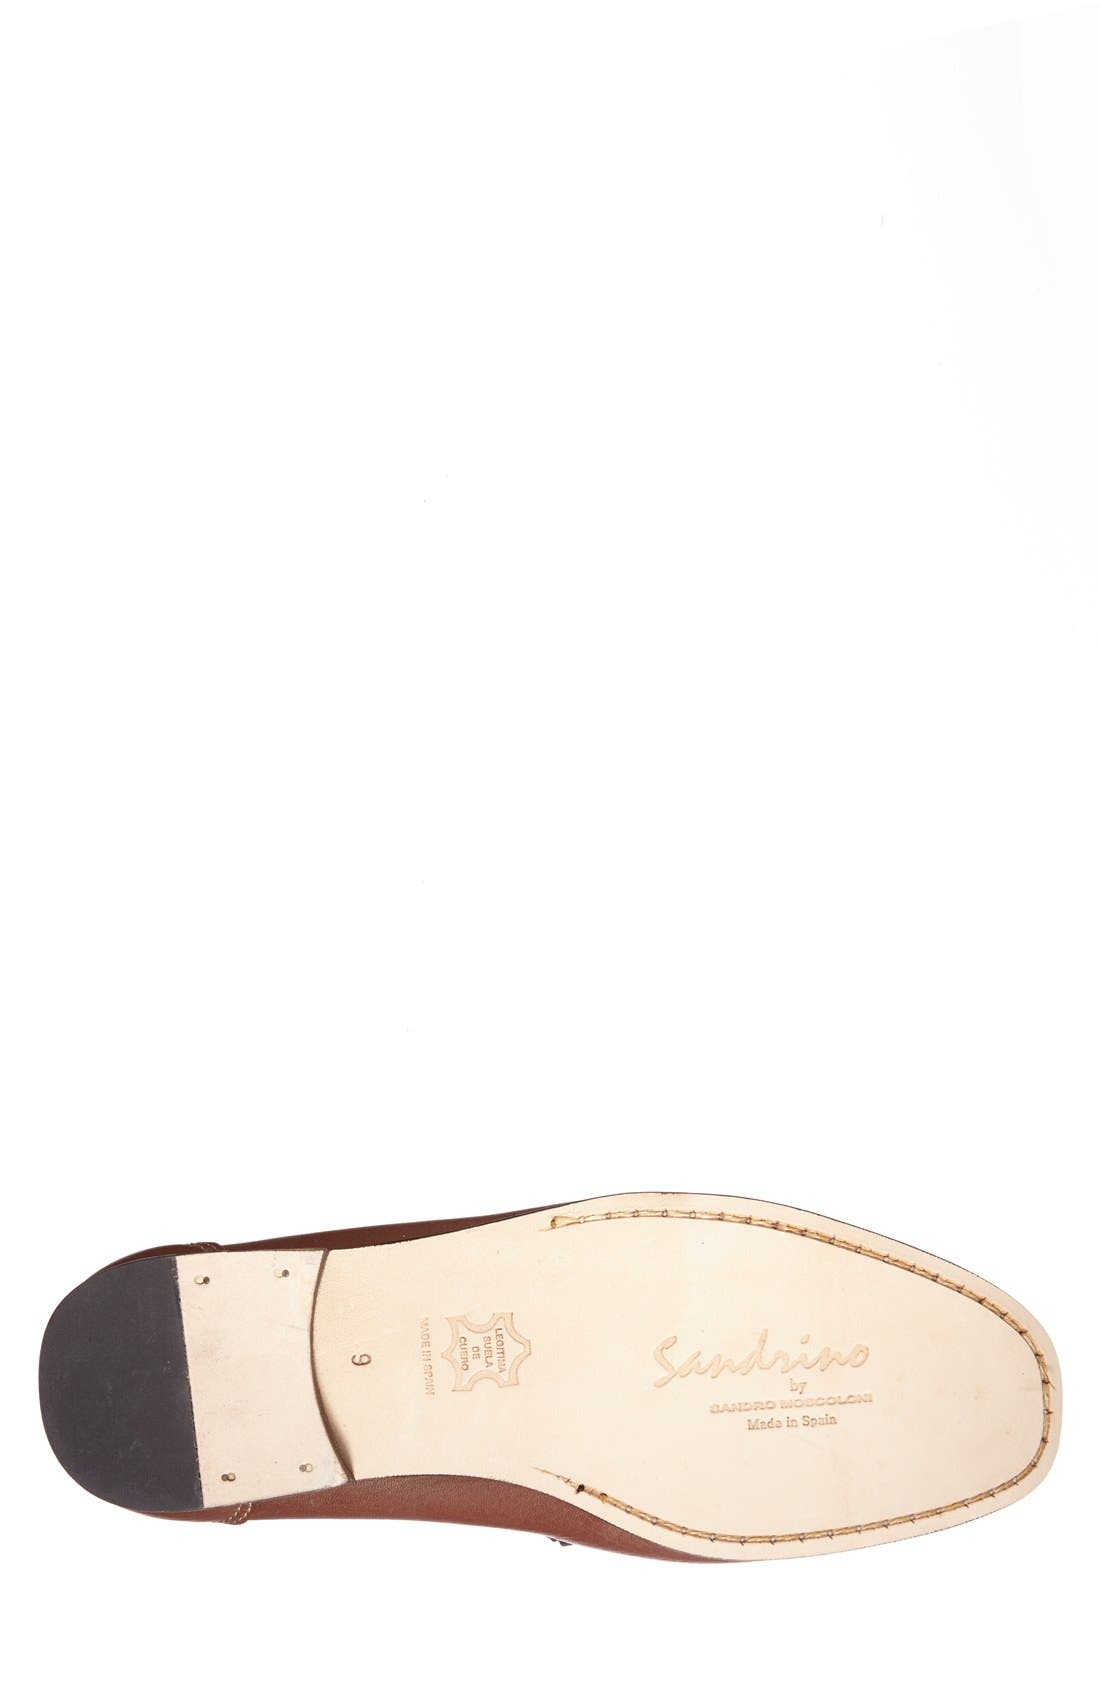 'San Remo' Leather Bit Loafer,                             Alternate thumbnail 4, color,                             BROWN